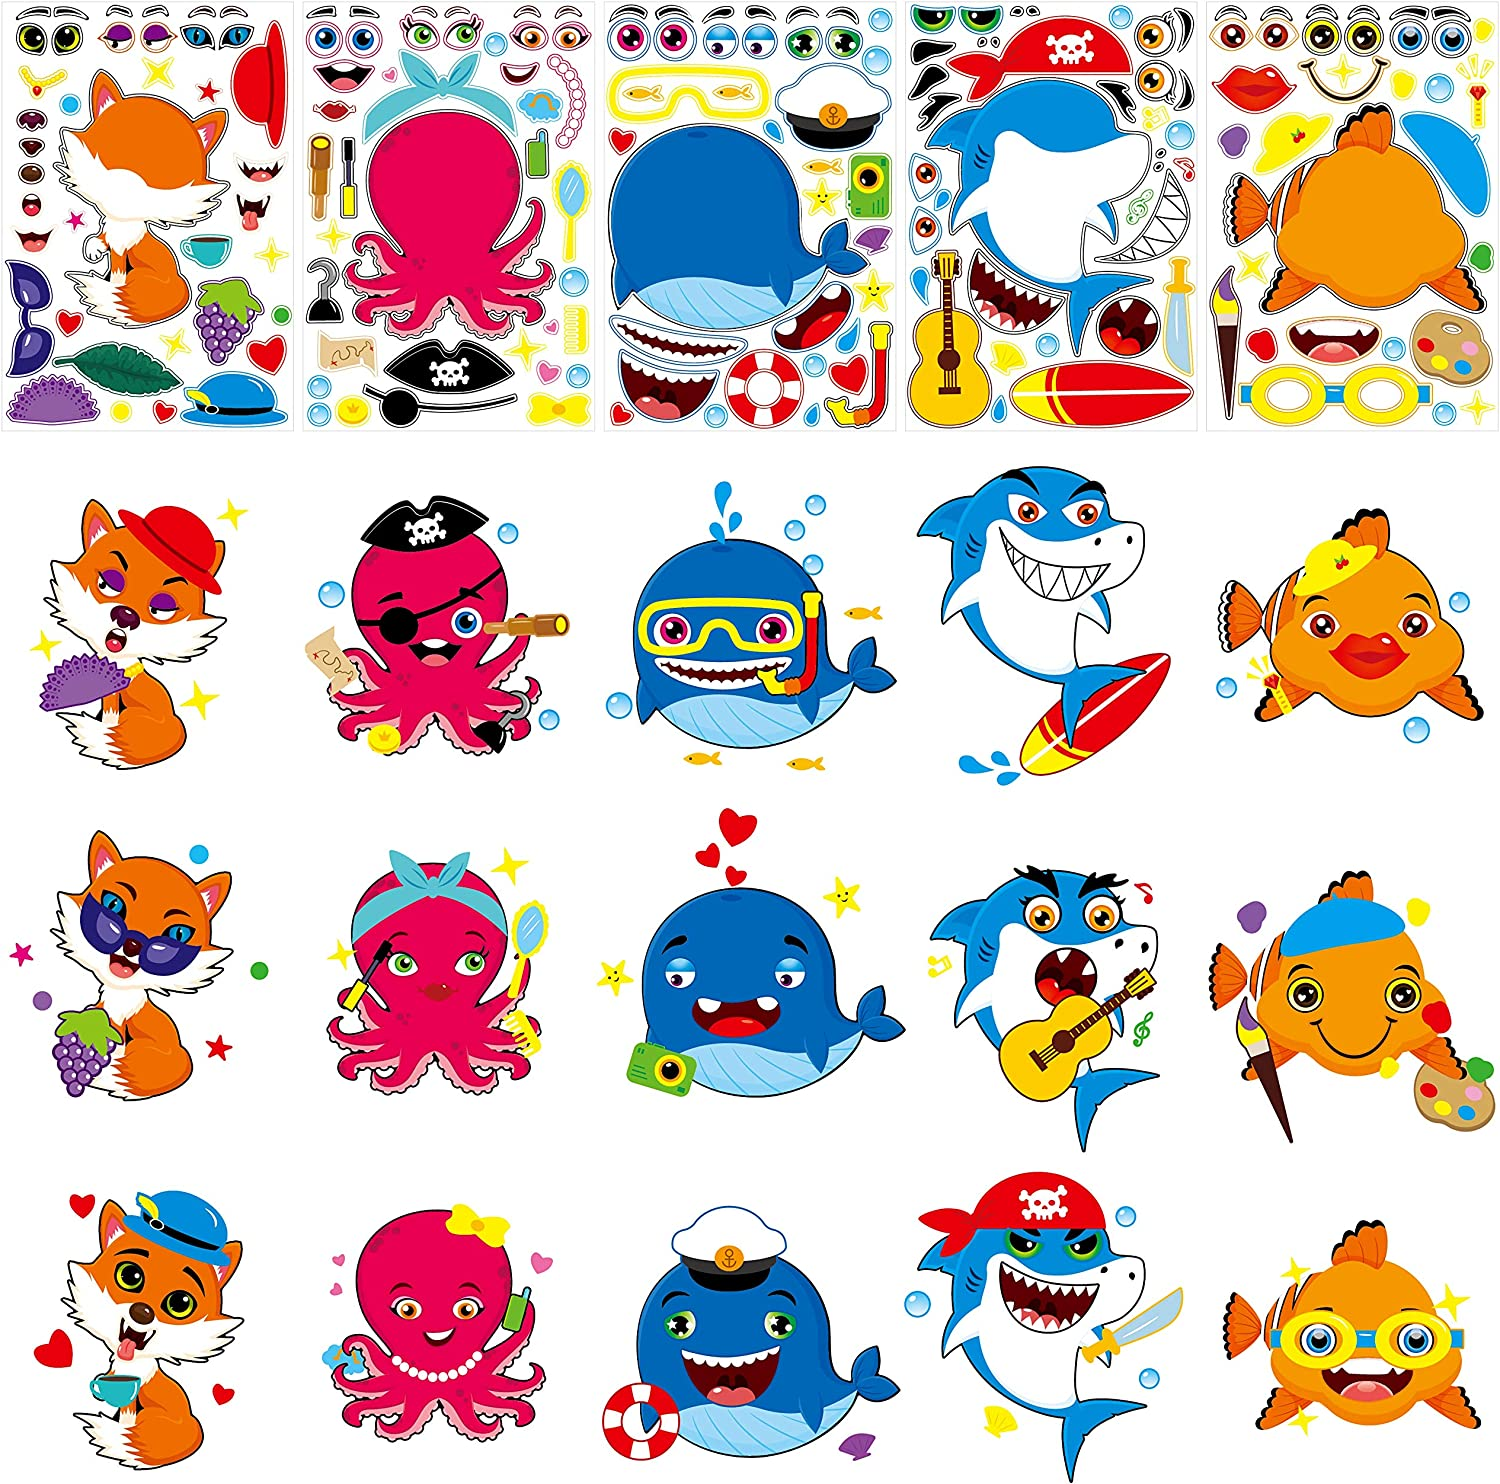 Octopuses 40 PCS Make a Face Sticker,Can be Random Combination According to Your Own Preference 10 Cartoon Animal Including Sharks Foxes and More to Foster Kids Creativity